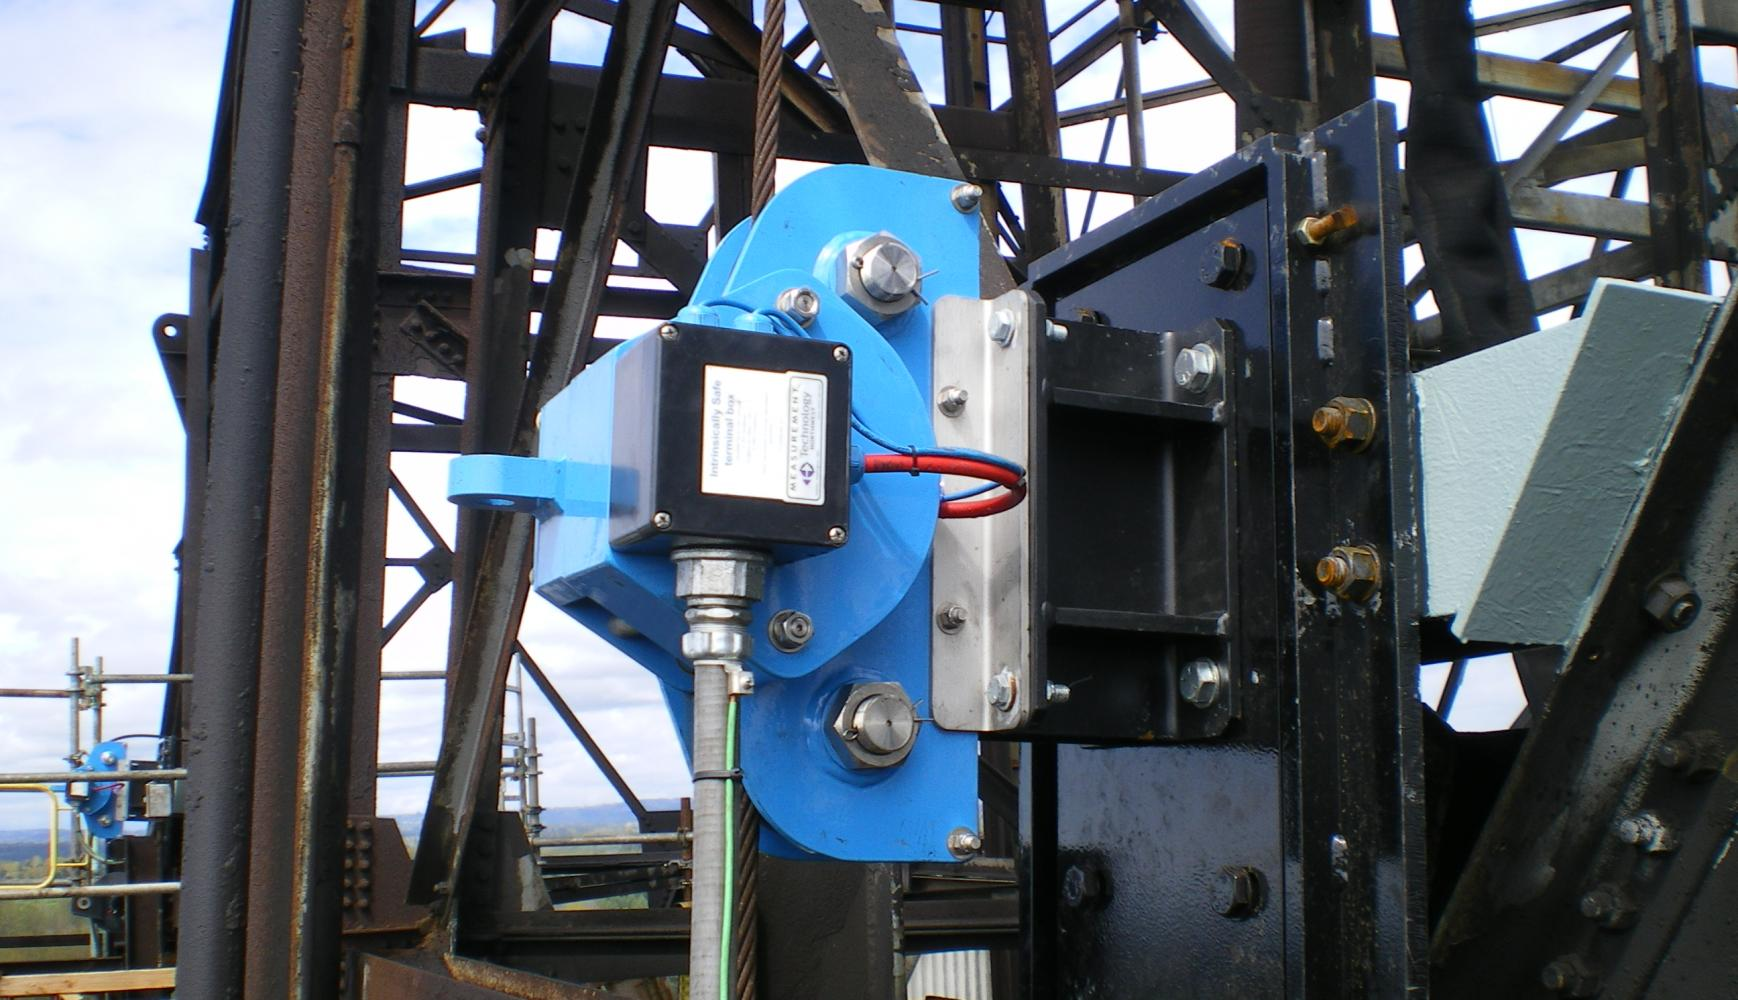 Decoking Winch Monitoring BP Cherry Point, tensiometer, display